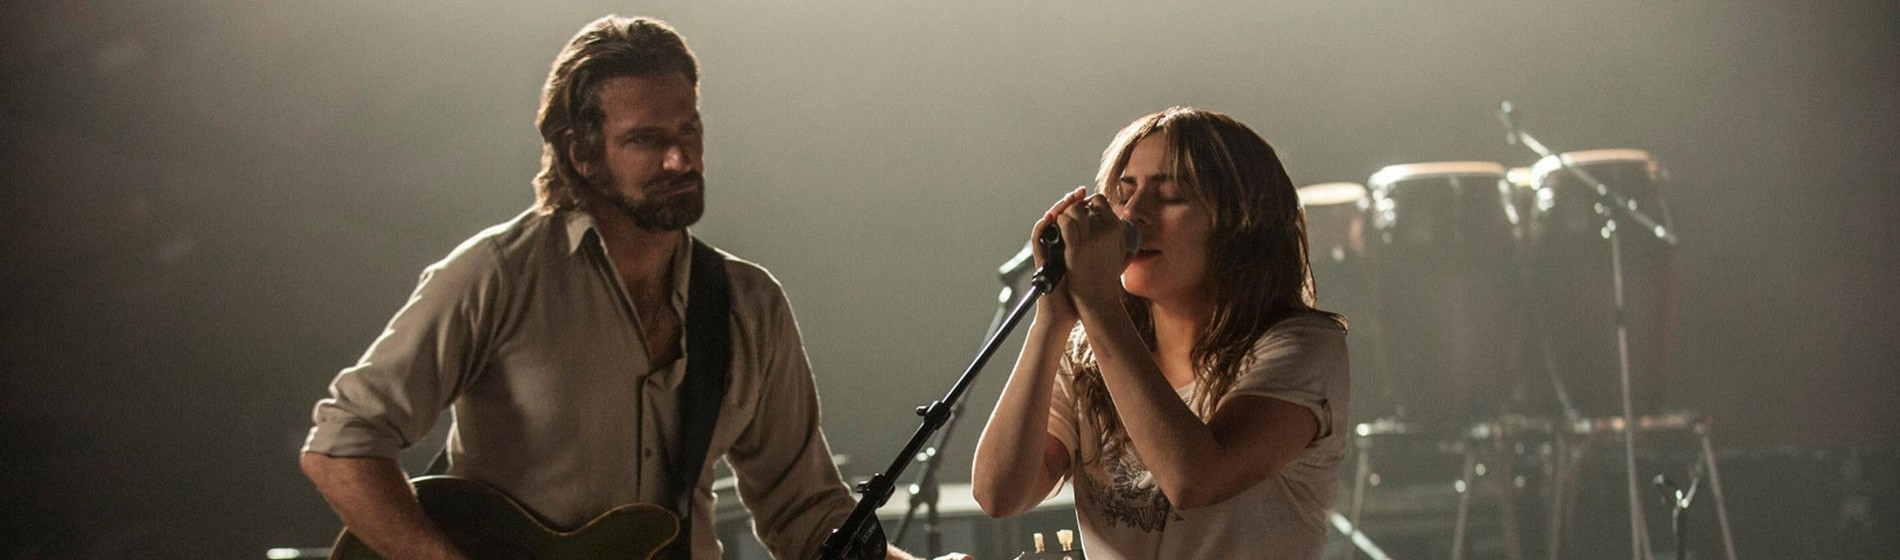 TIFF 2018 A Star is Born Review